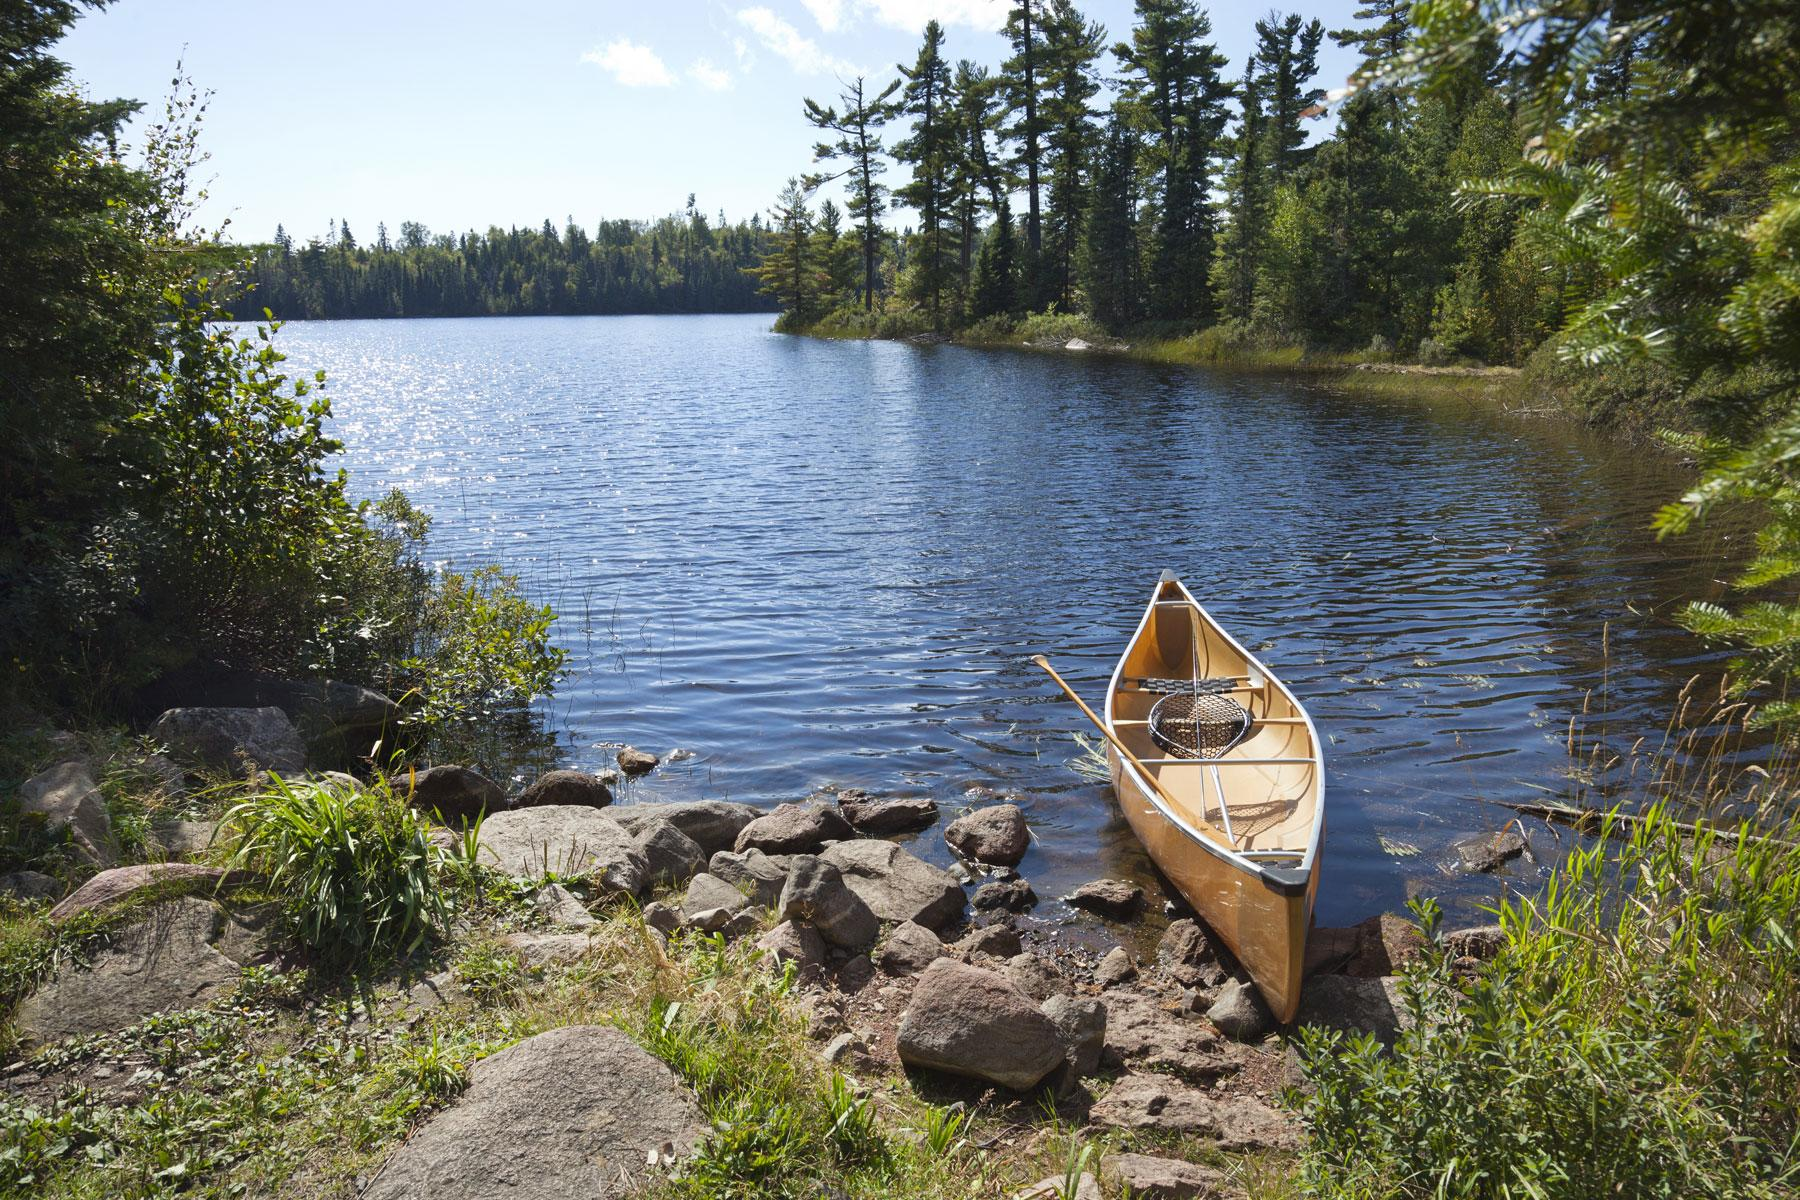 Canoeing in the boudary waters